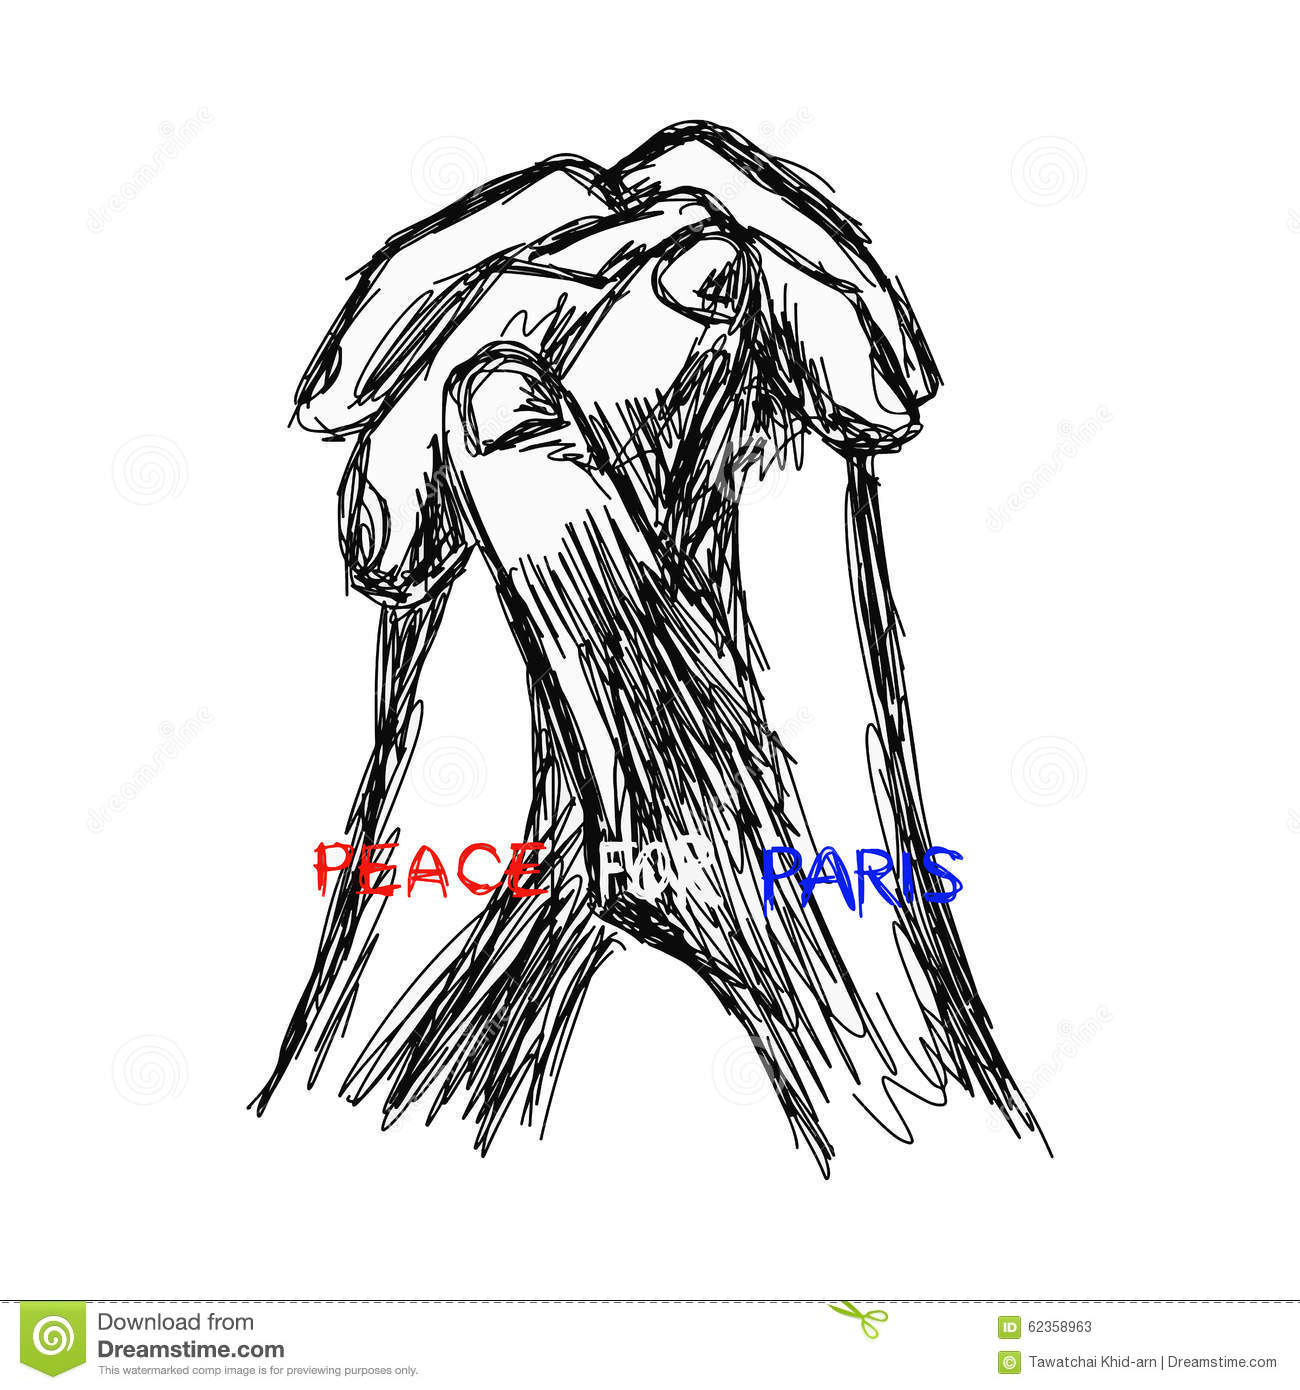 Illustration Vector Doodle Hand Drawn Of Sketch Praying